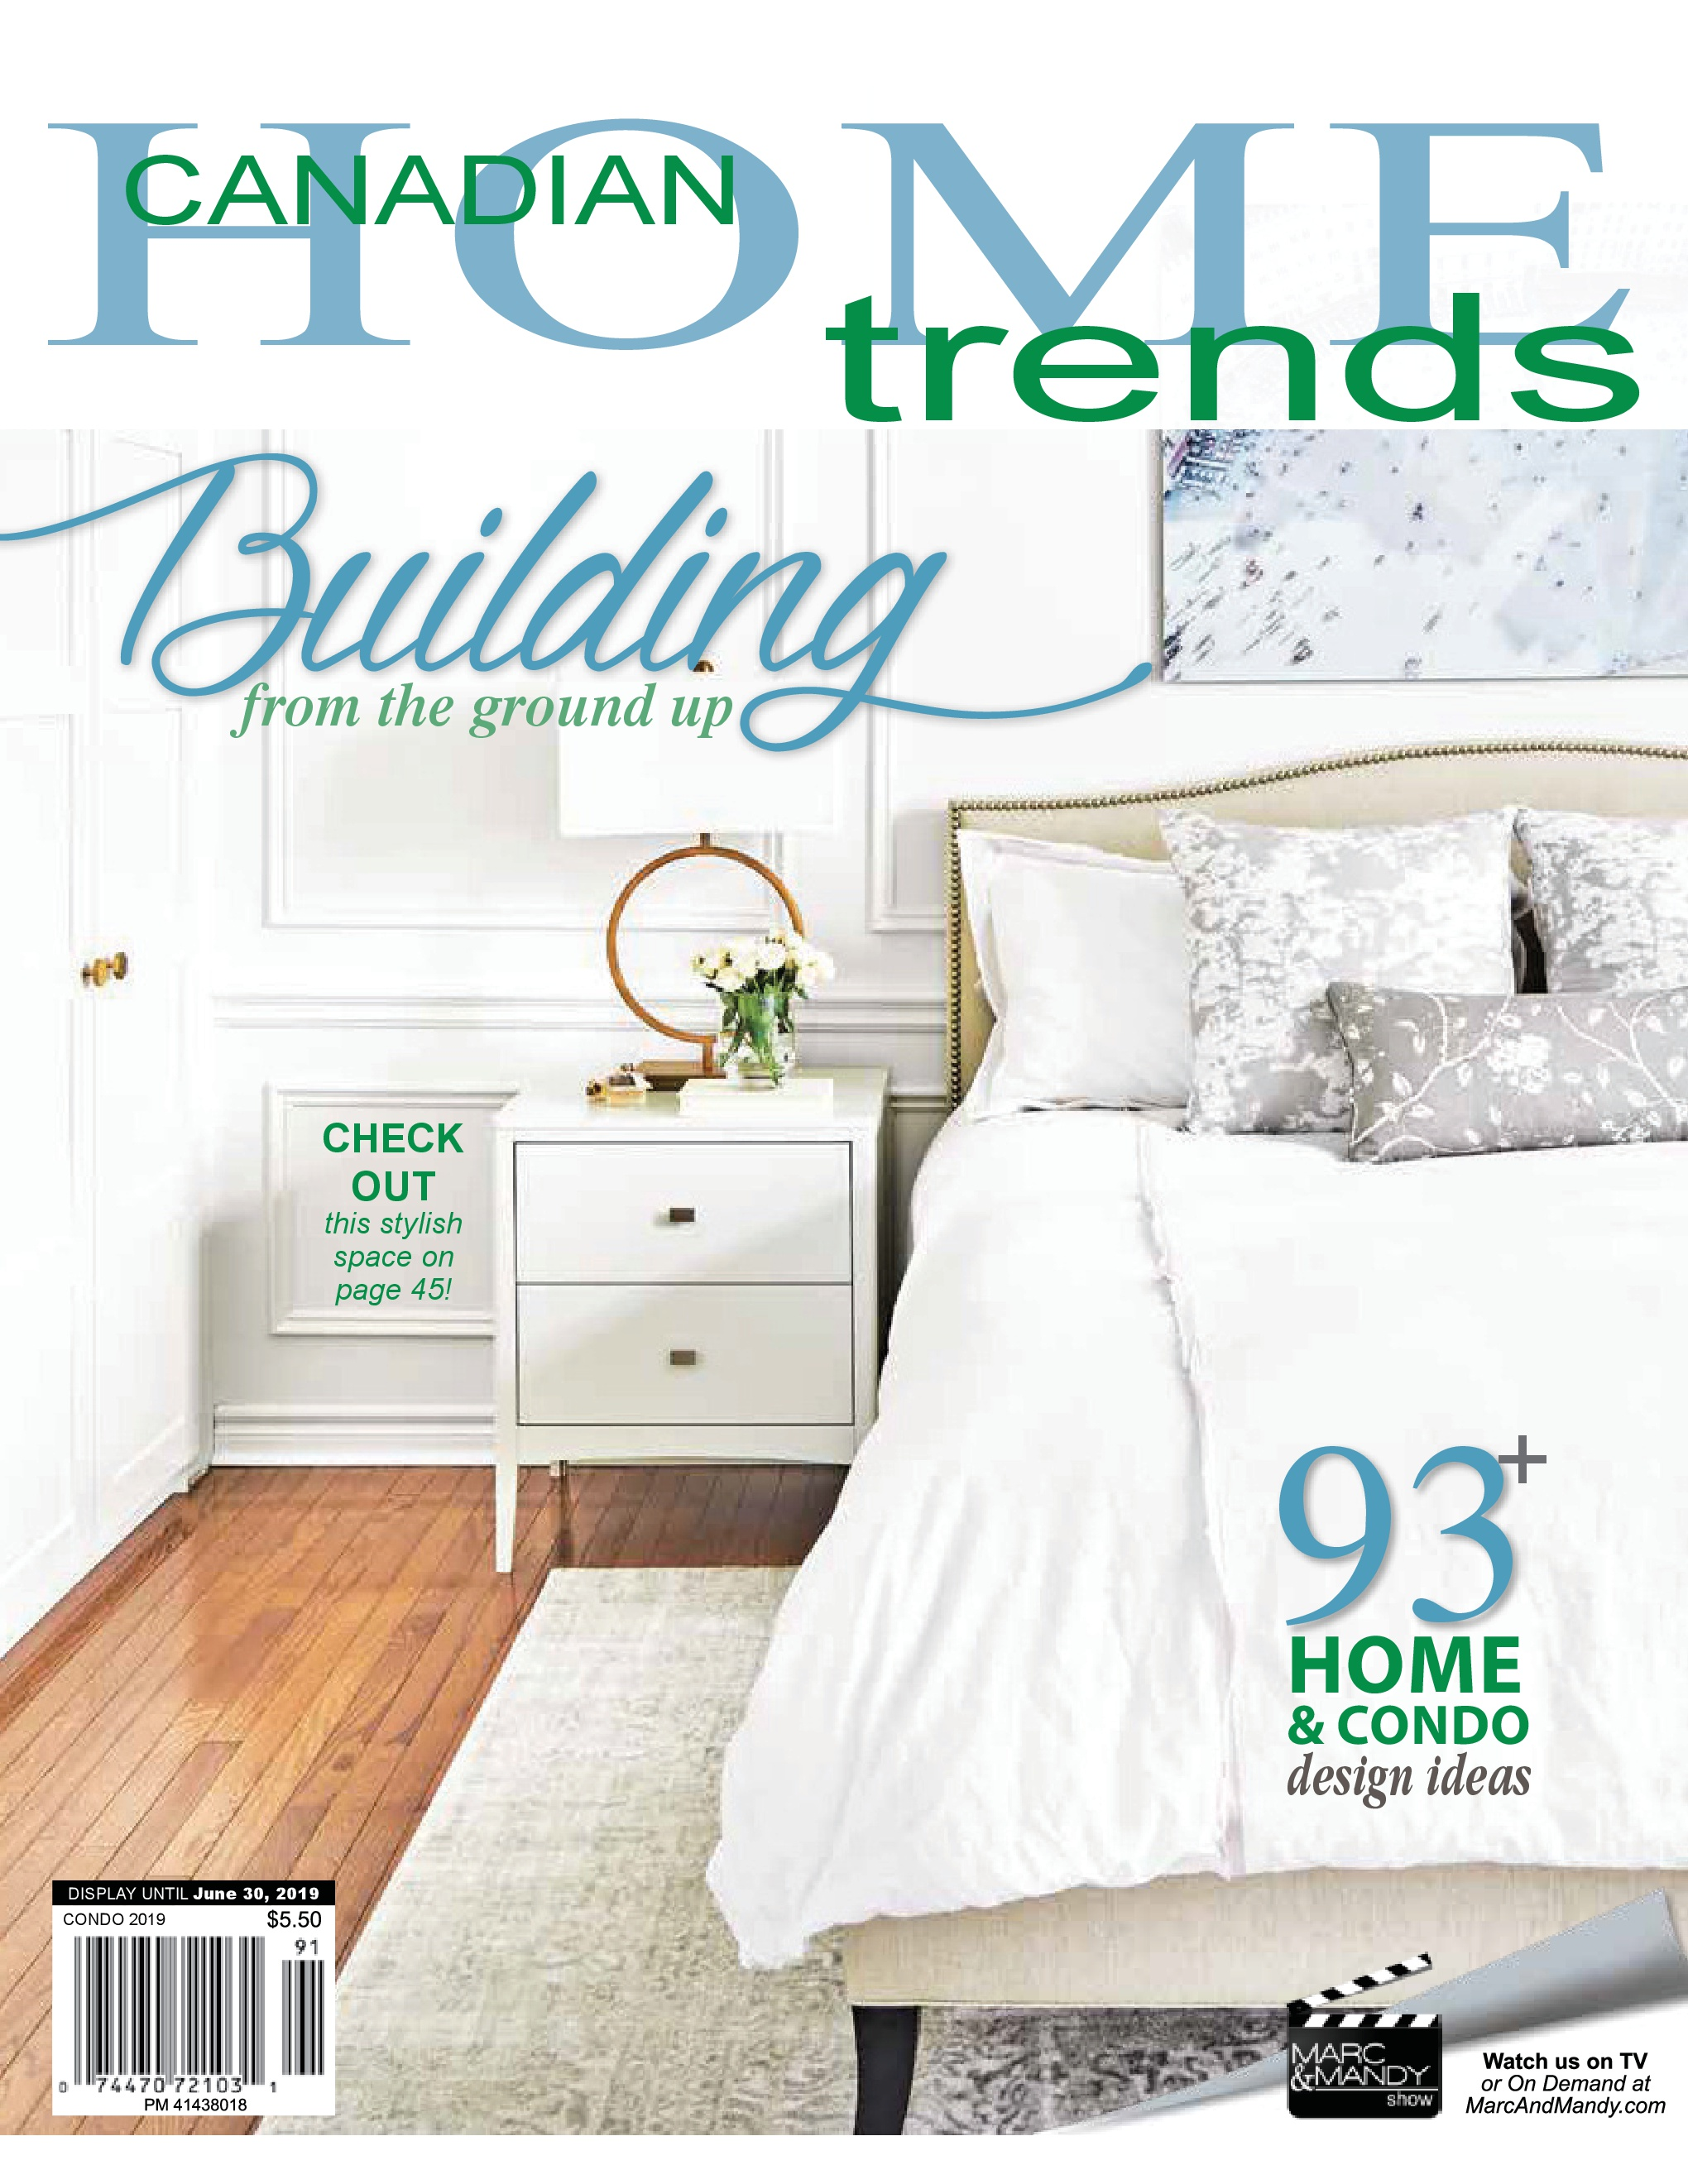 Double Take With Canadian Home Trends Magazine Kare Canada